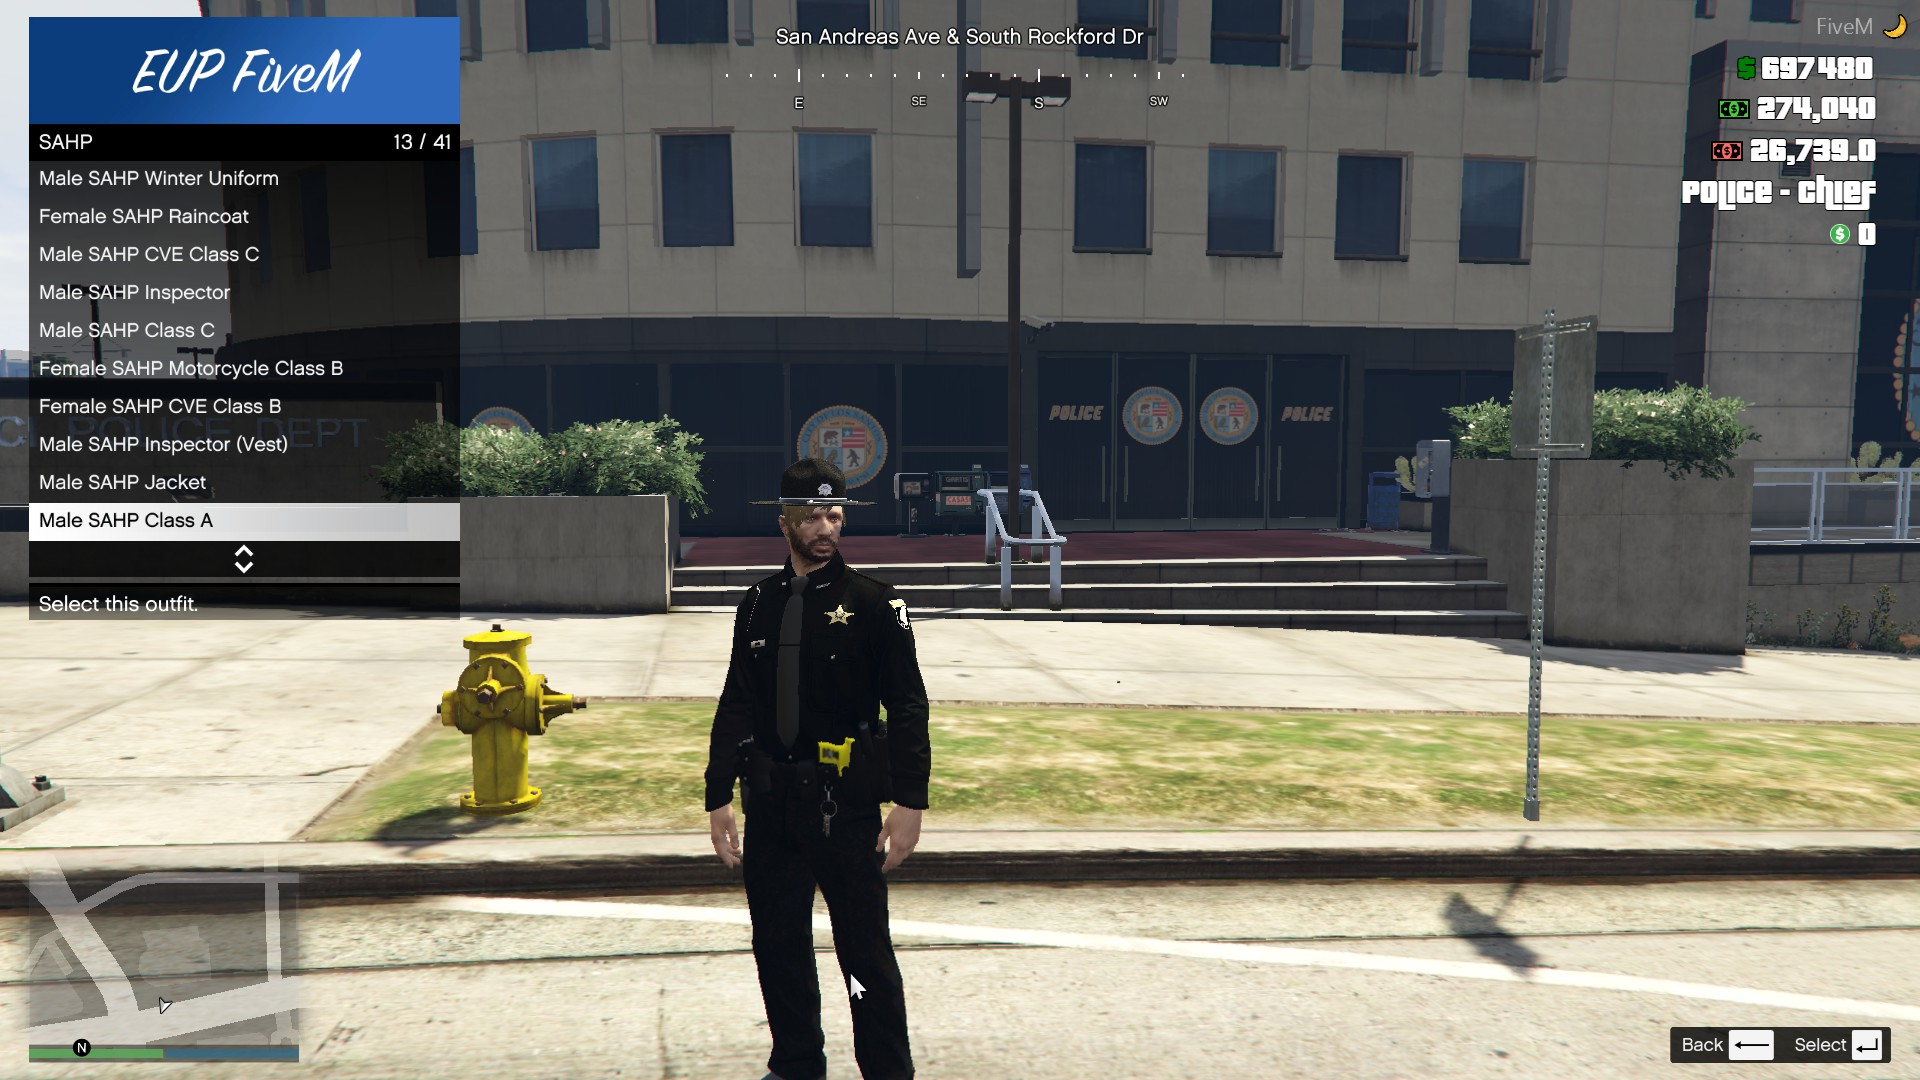 Black San Andreas State Police EUP Uniforms (Idaho Based) 1 0 0